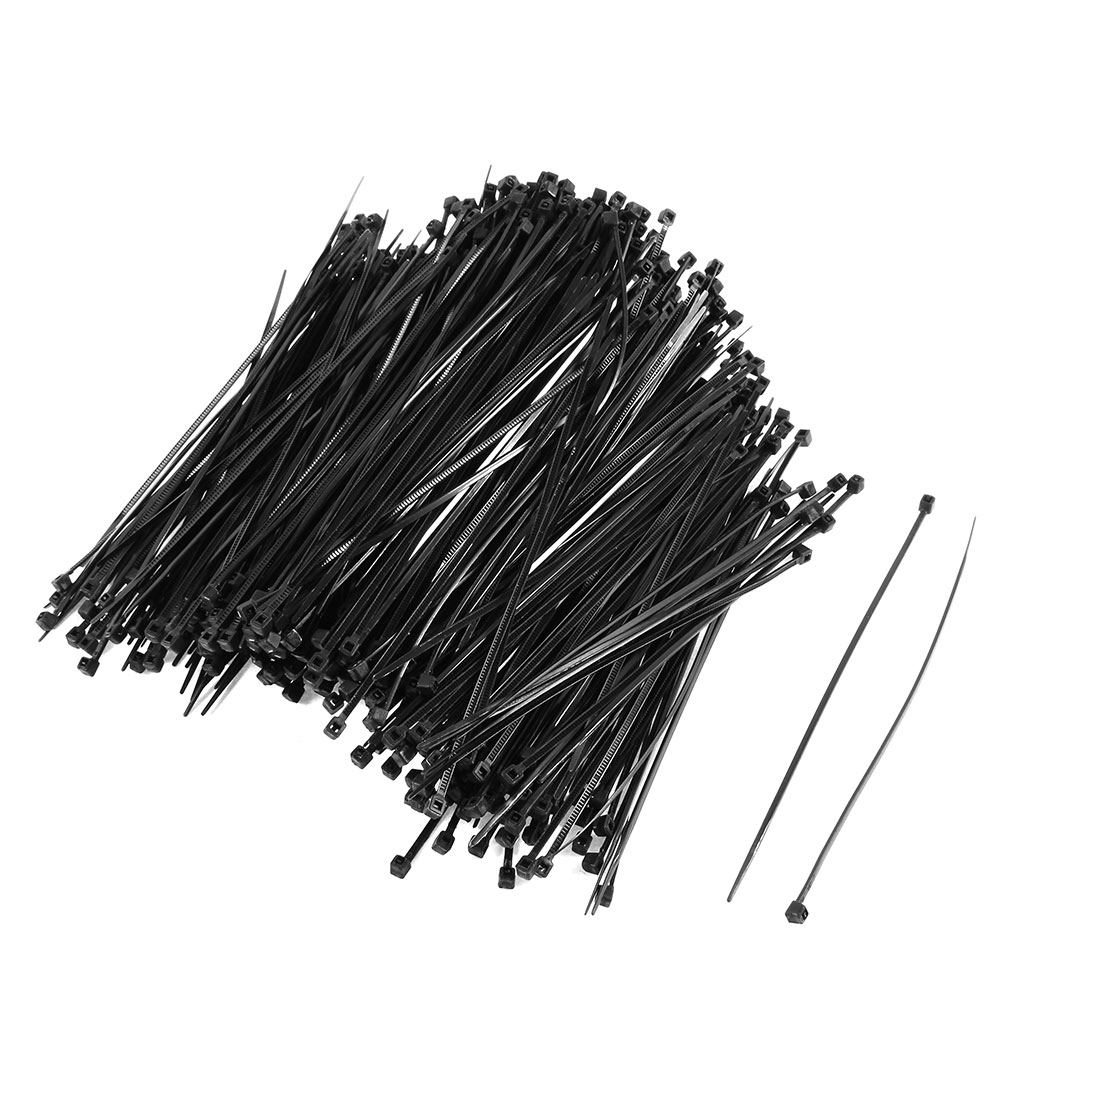 350PCS Black Self Locking Plastic Cable Wire Zip Tie Fasten Wrap 3mmx150mm